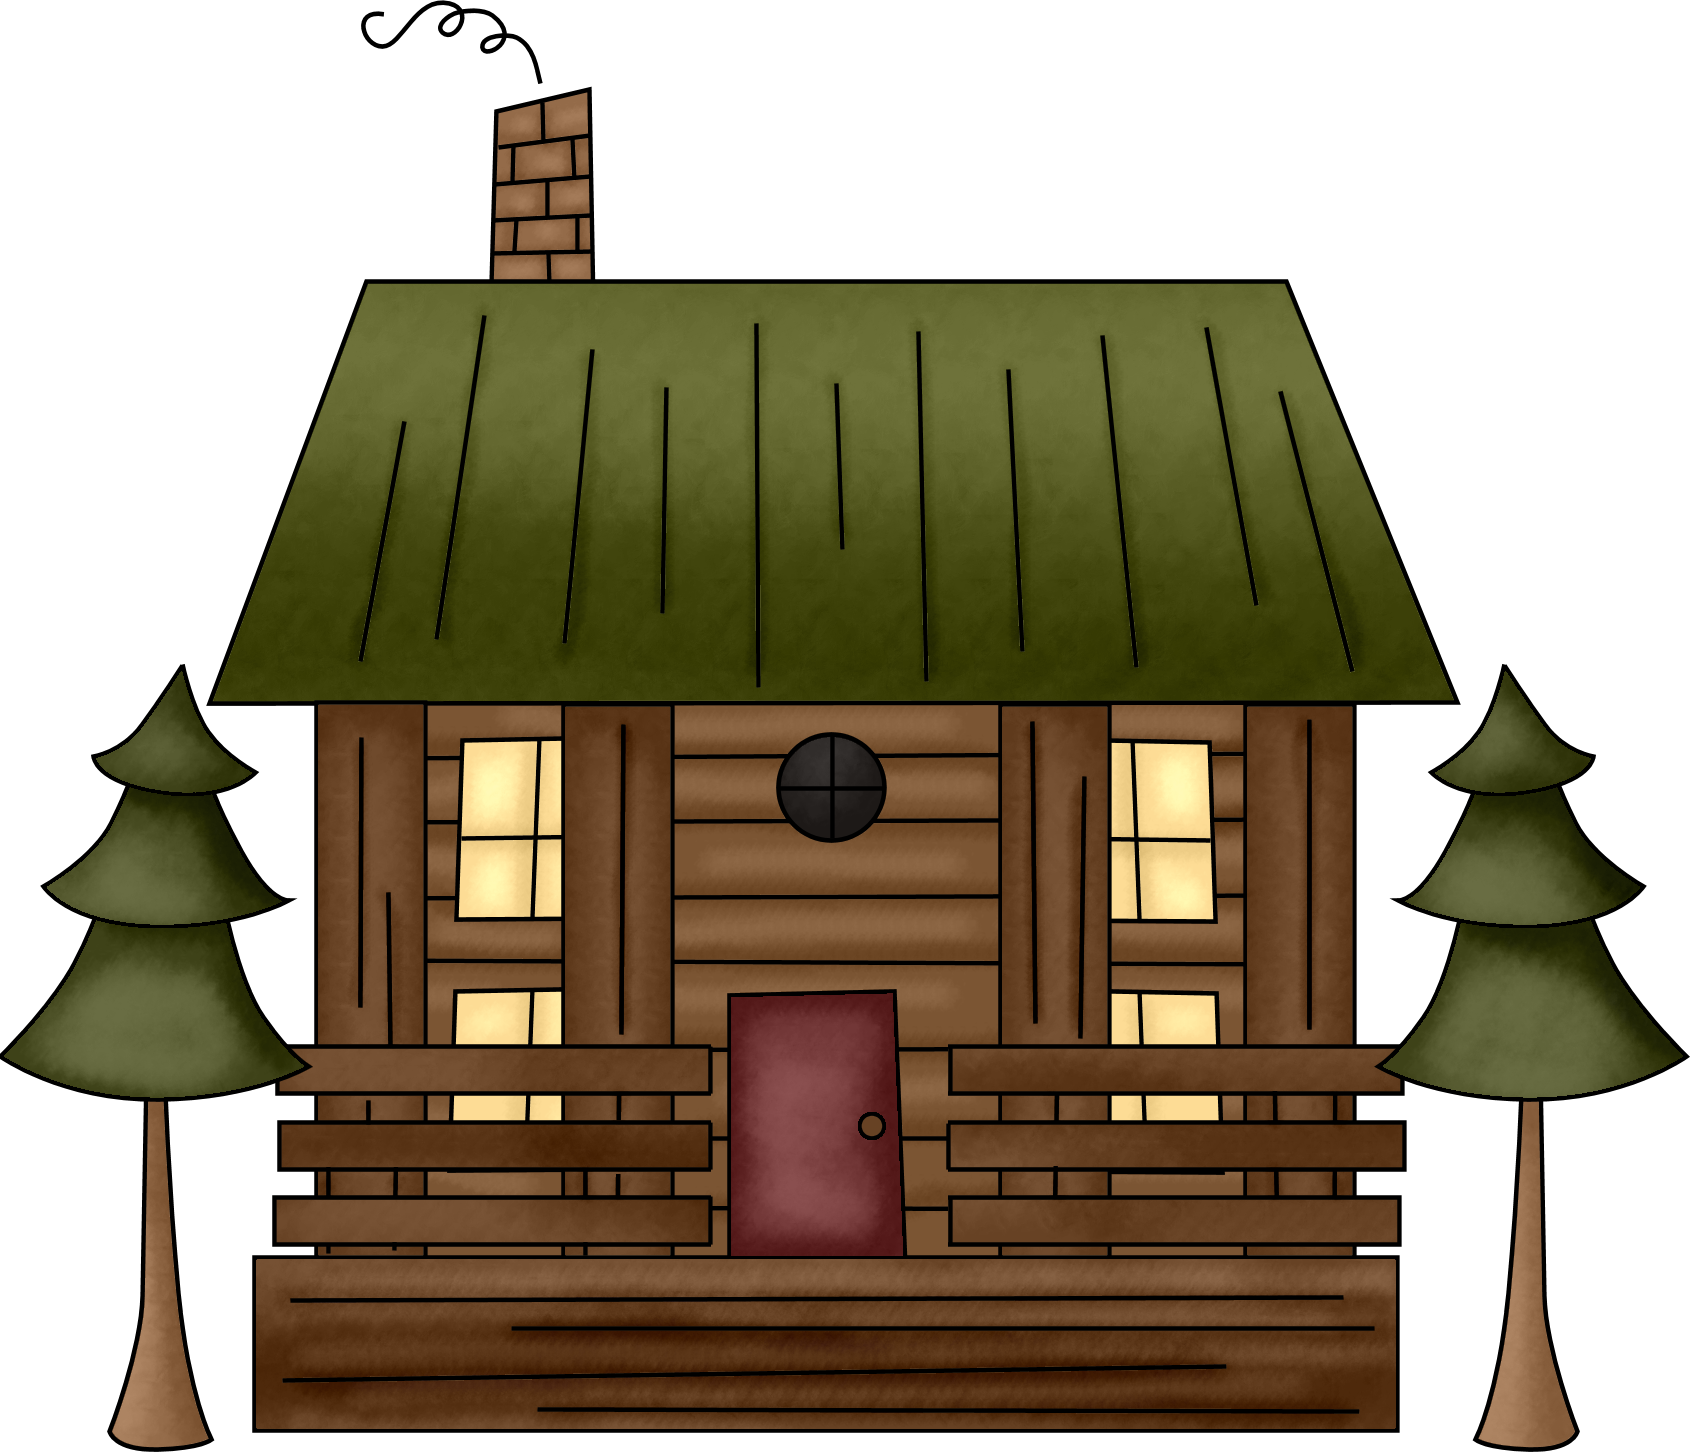 293 Log Cabin free clipart.